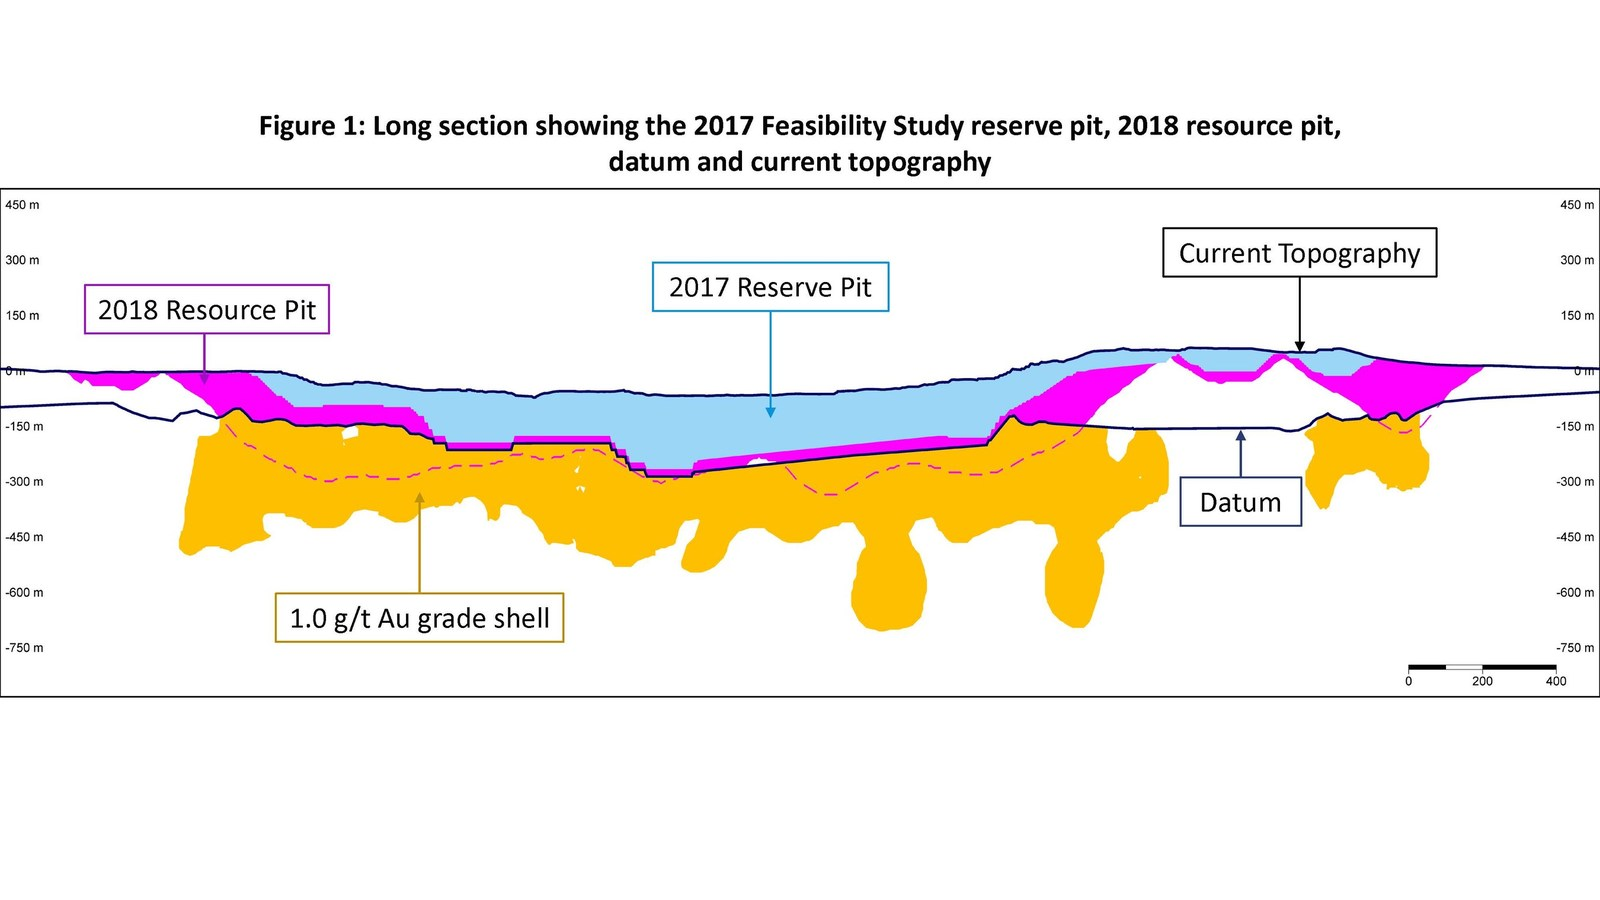 Figure 1: Long section showing the 2017 Feasibility Study reserve pit, 2018 resource pit, datum and current topography